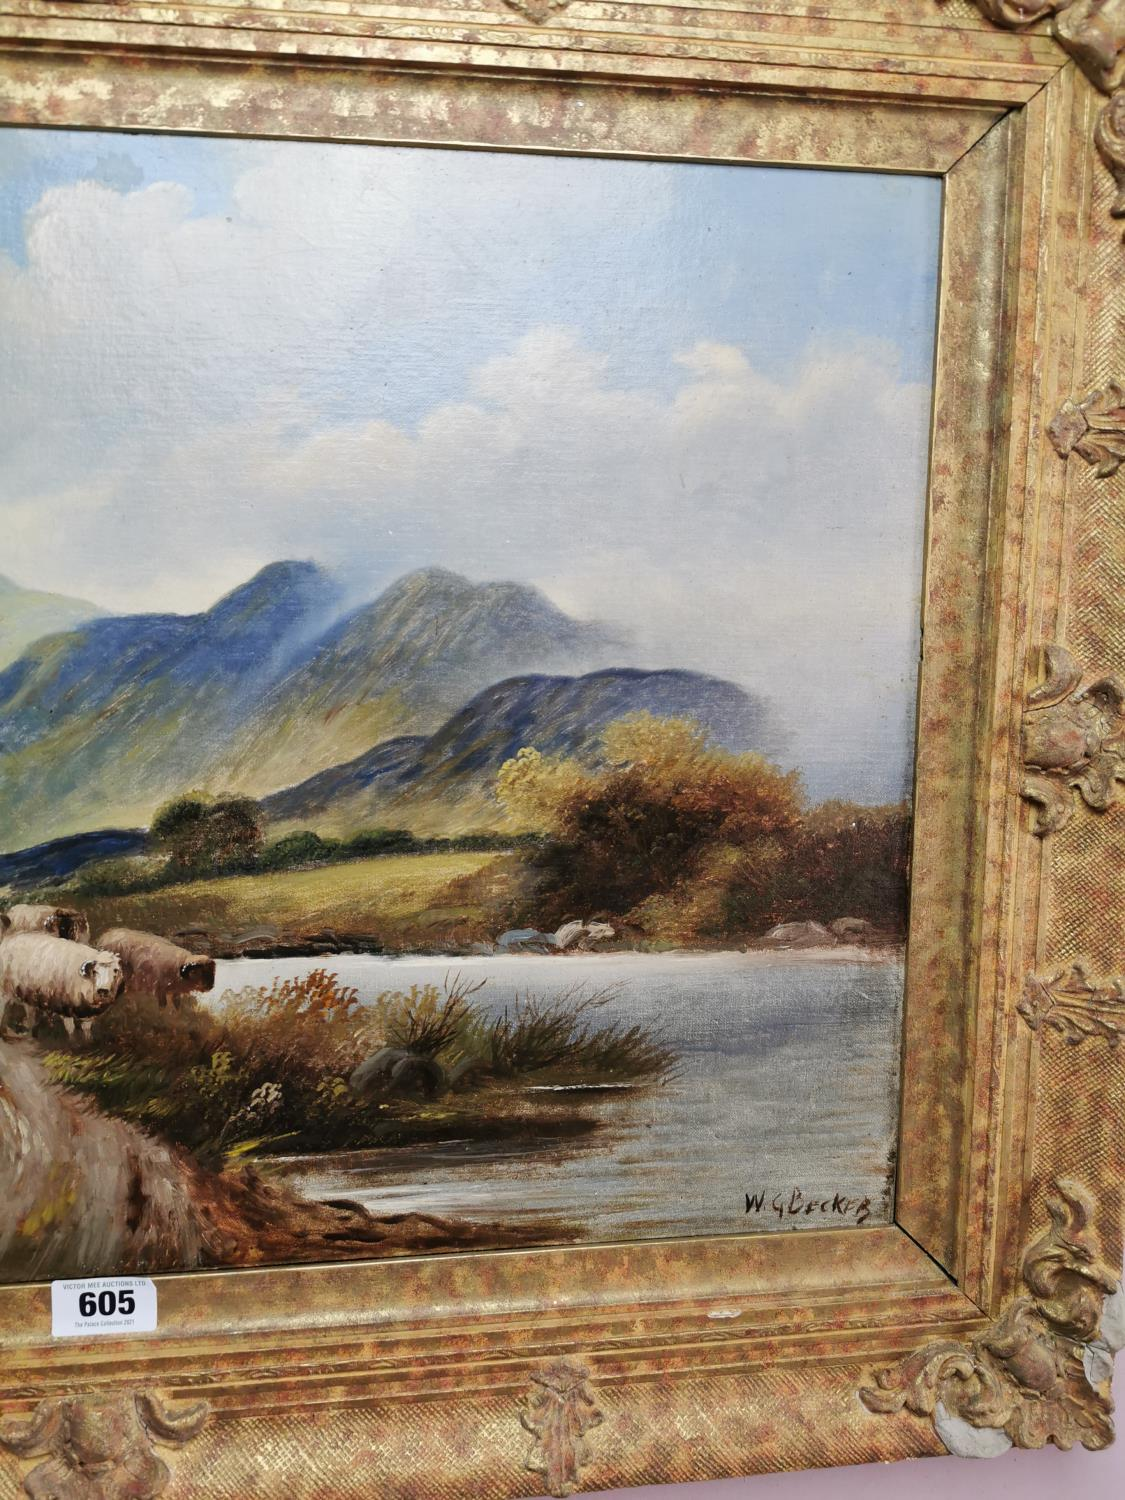 19th C. oil on canvas Mountain and Sheep scene. - Image 2 of 3